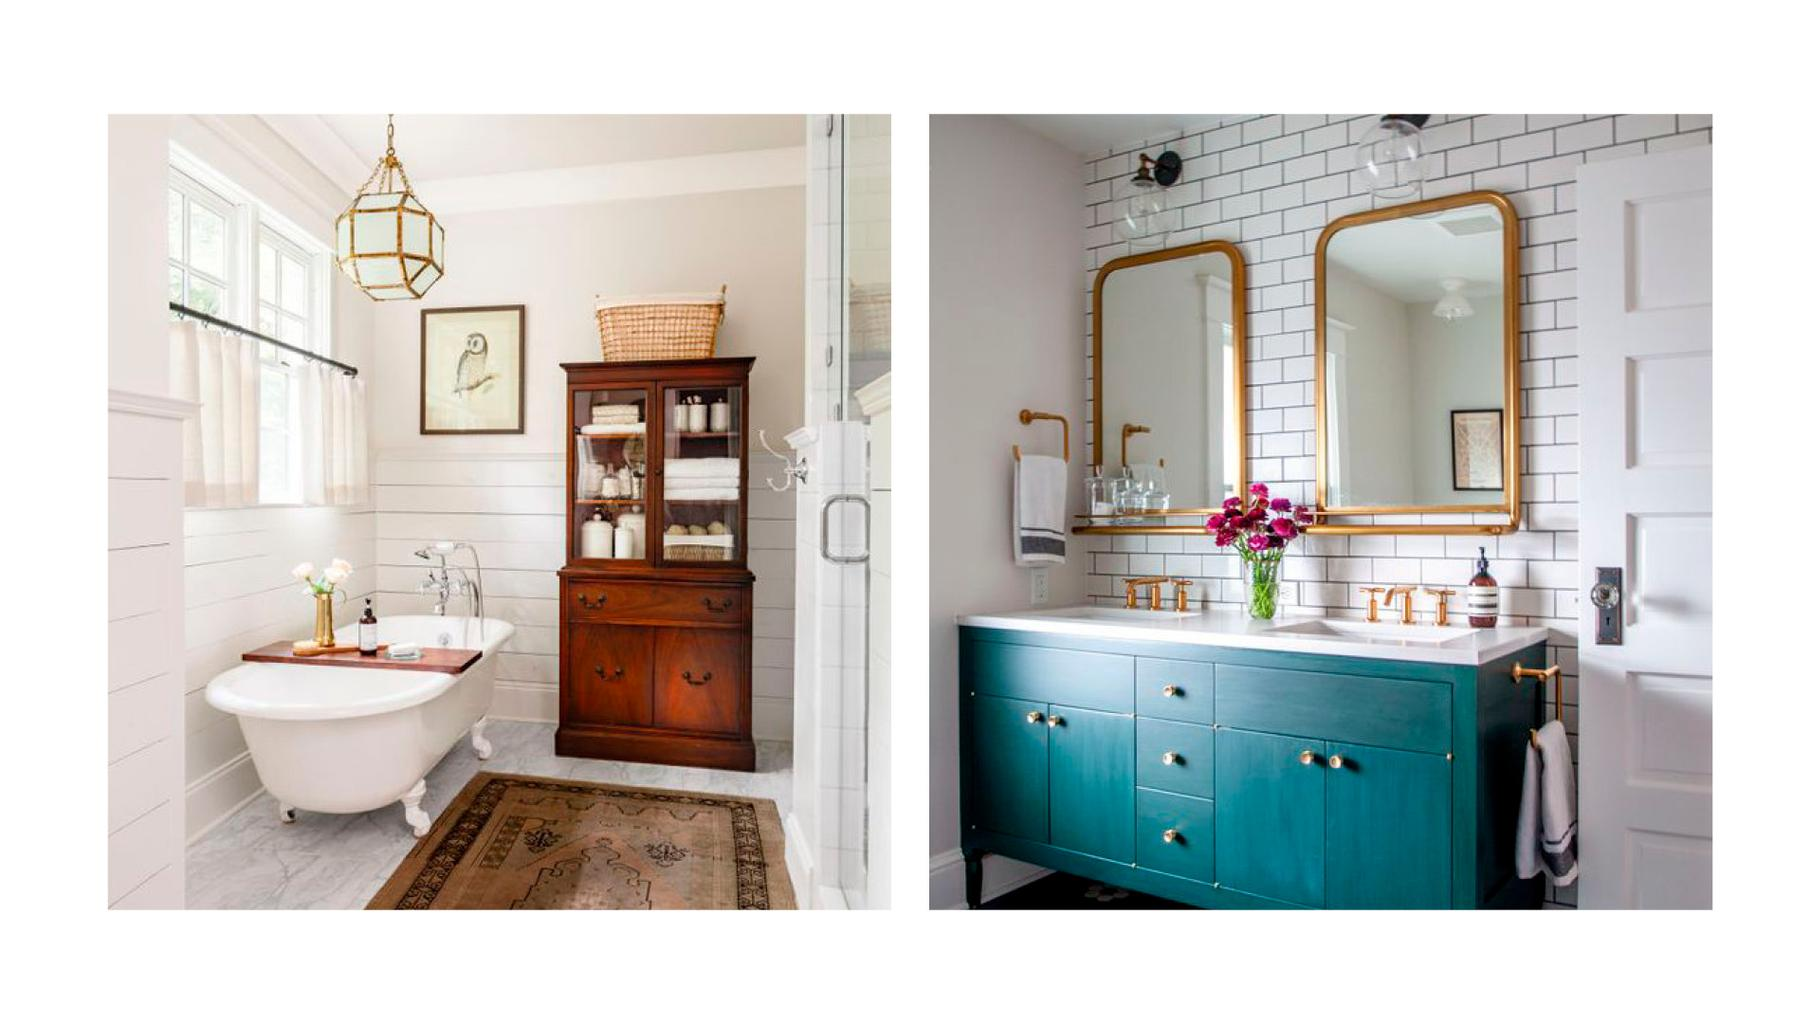 Hereu0027s Lots Of Pretty Pinterest Bathrooms To Drool Over And Dream About |  Grazia